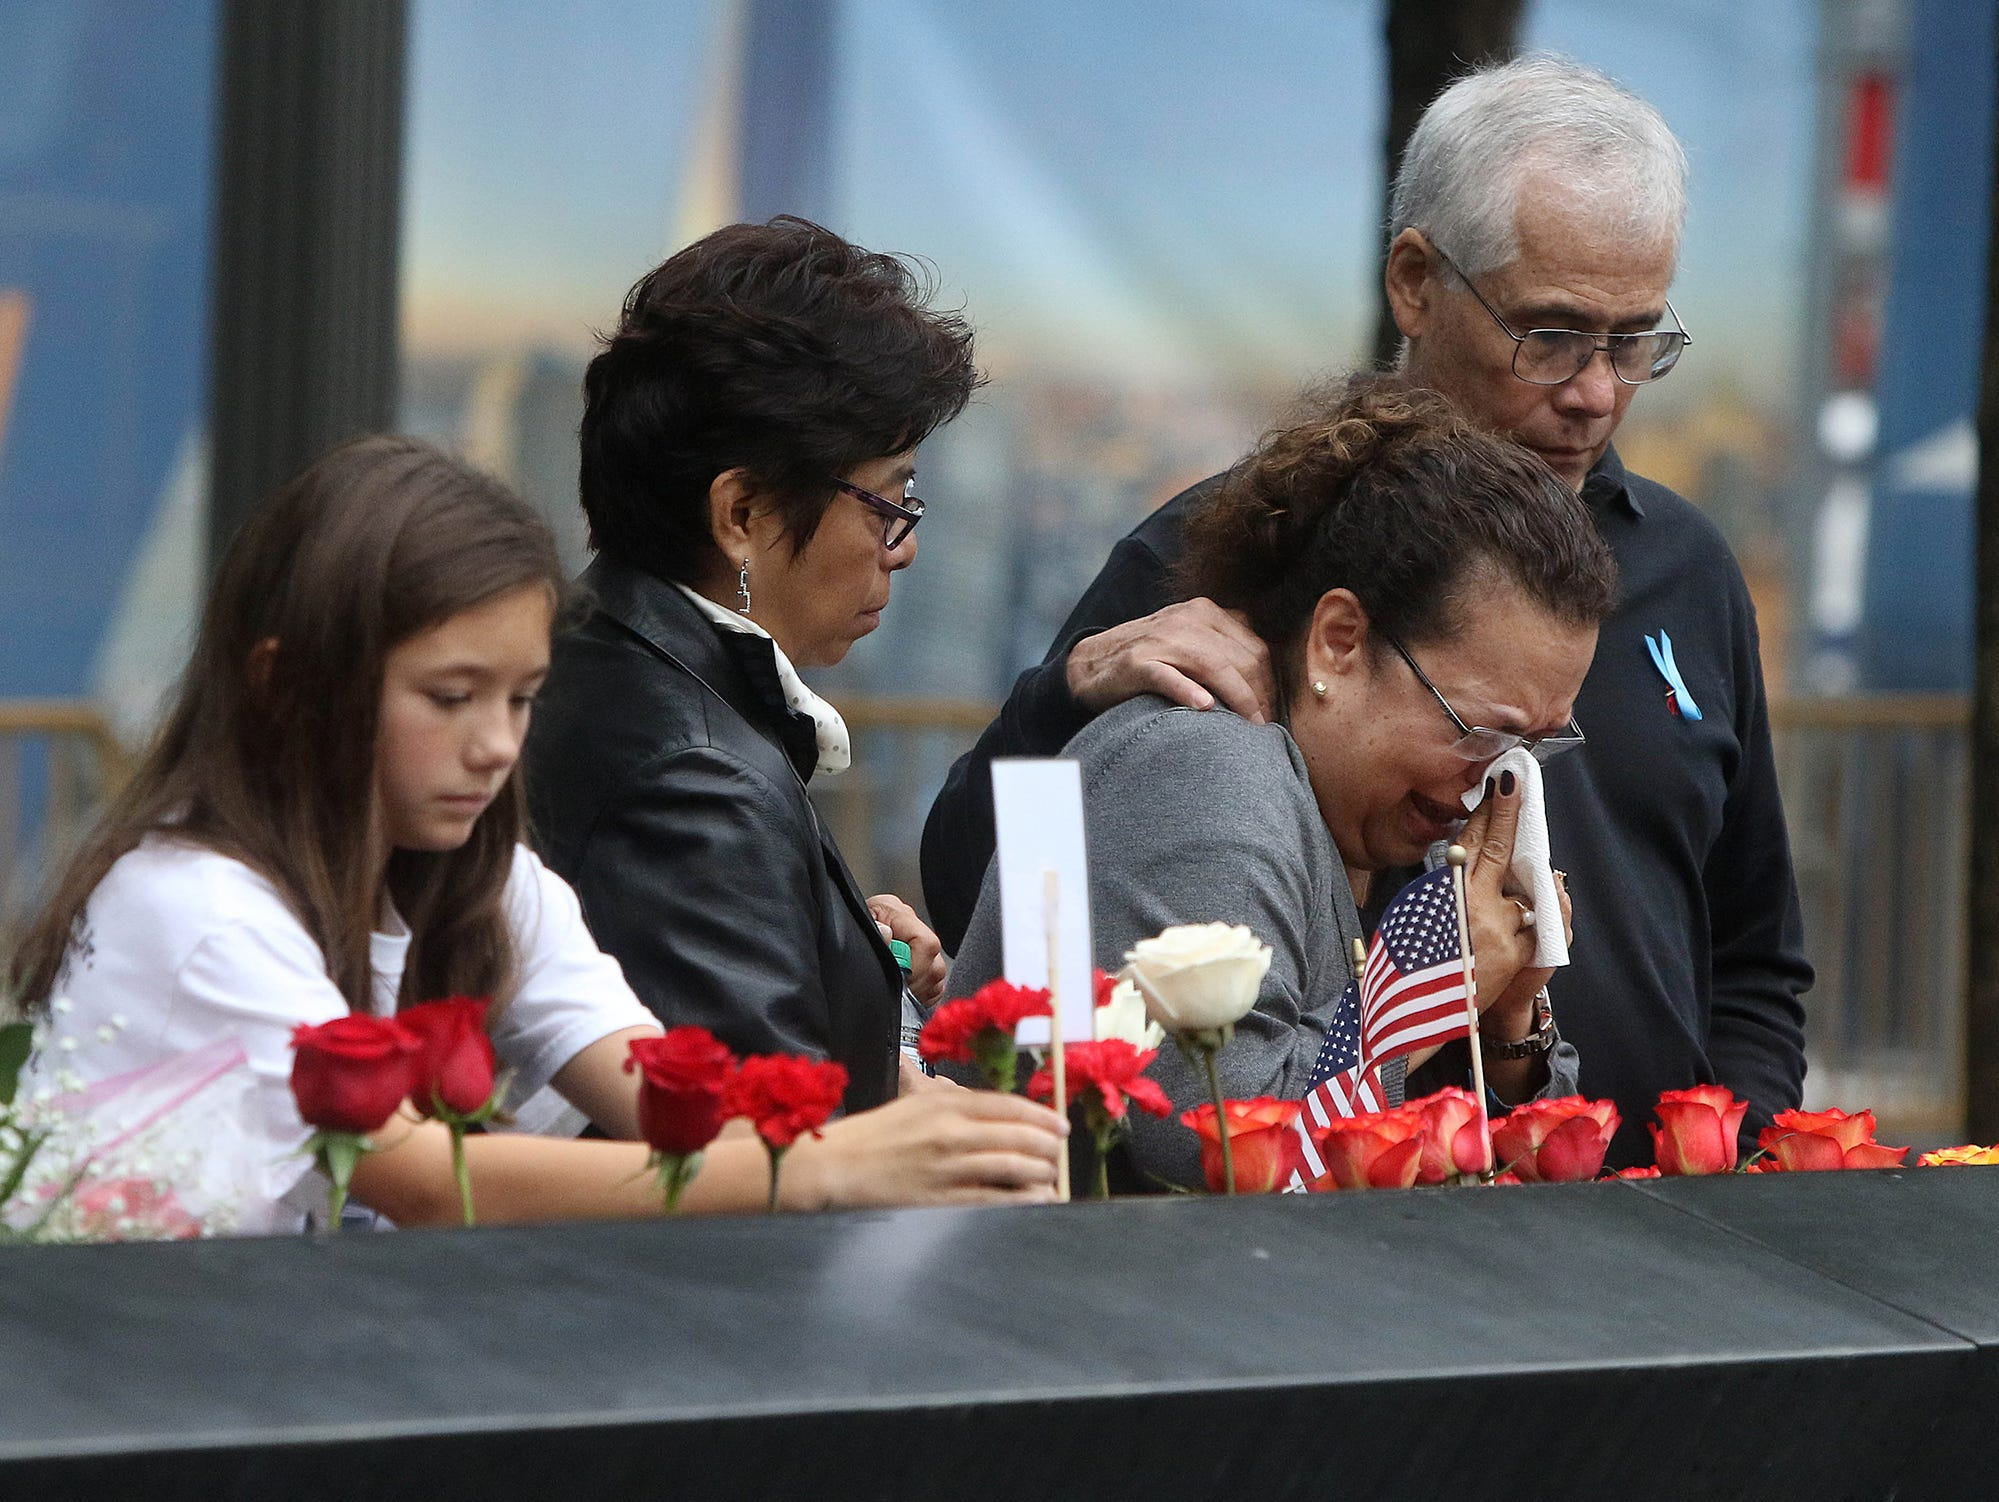 A woman is overcome with emotion at the North Tower Memorial during ceremonies at the National September 11 Memorial observing the 17th anniversaryof the attacks that killed people in Manhattan, the Pentagon, Flight 93 and honoring those who died in the 1993 World Trade Center bombing.